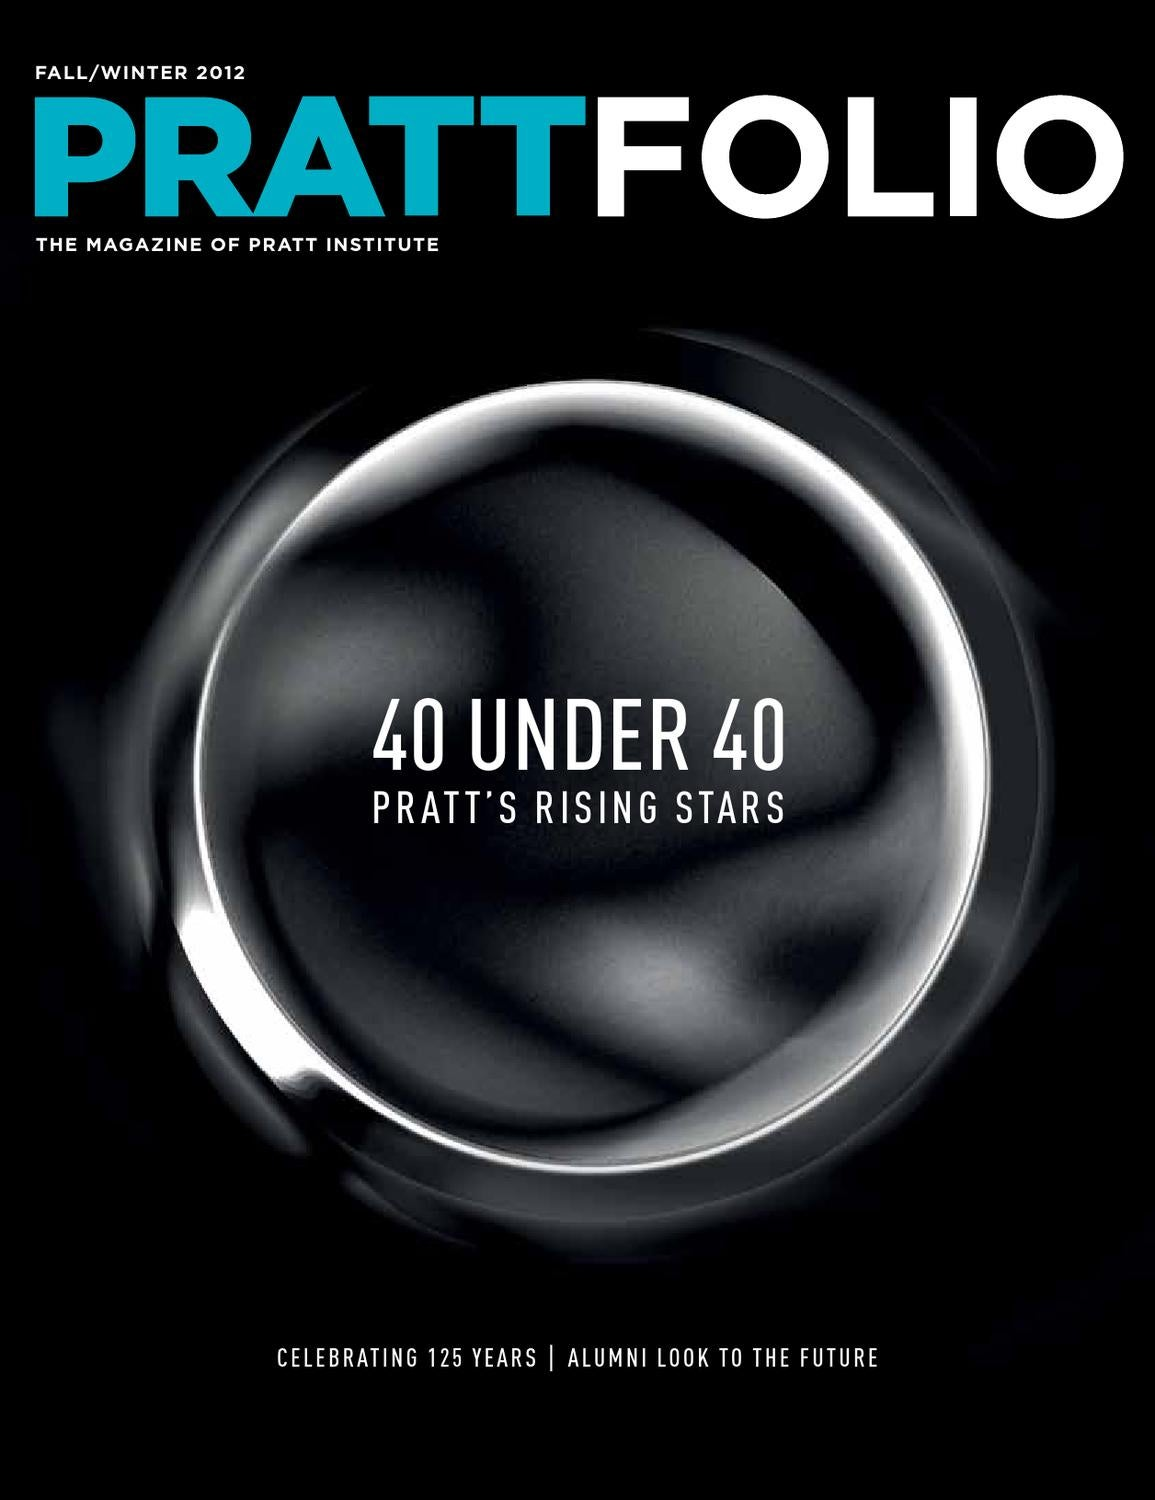 "Prattfolio Fall/Winter 2012 ""40 Under 40"" Issue"" by Pratt Institute ..."